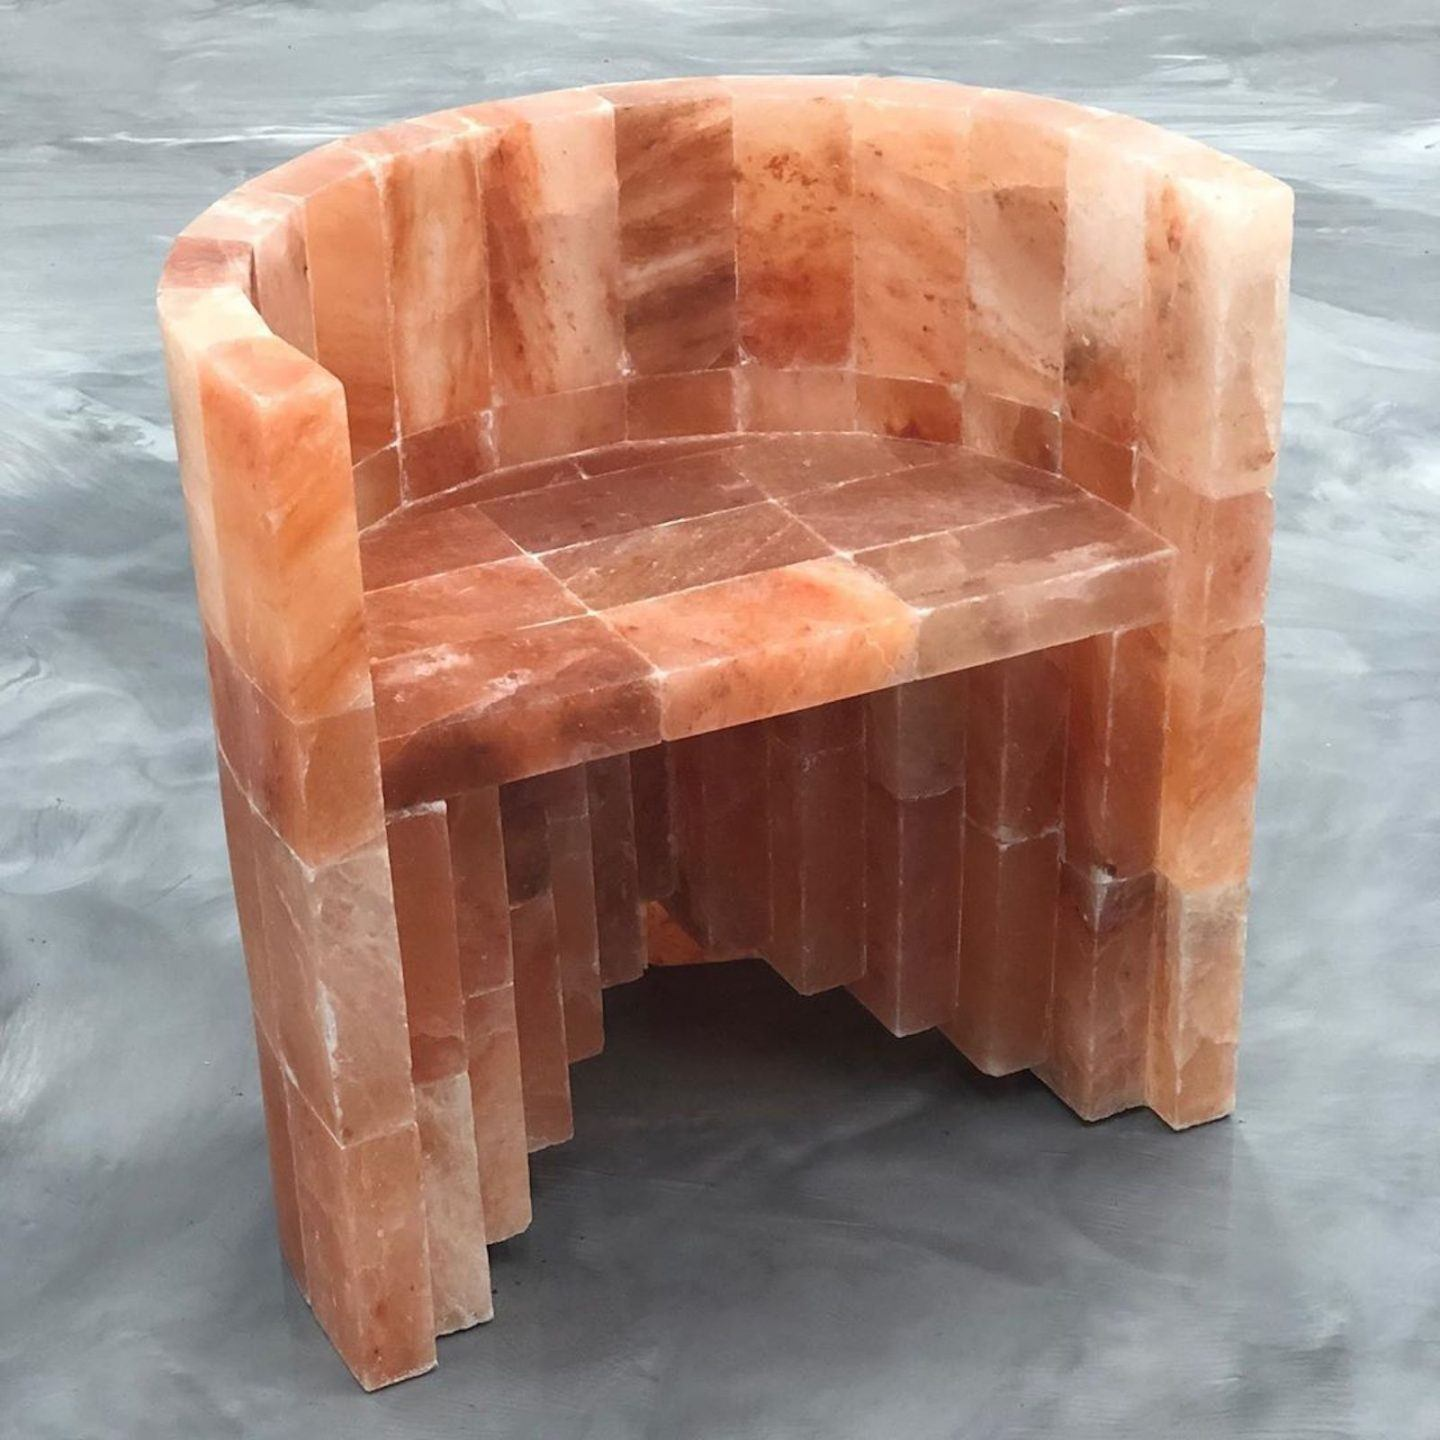 IGNANT-Design-Gregory-Beson-Salt-Chair-06